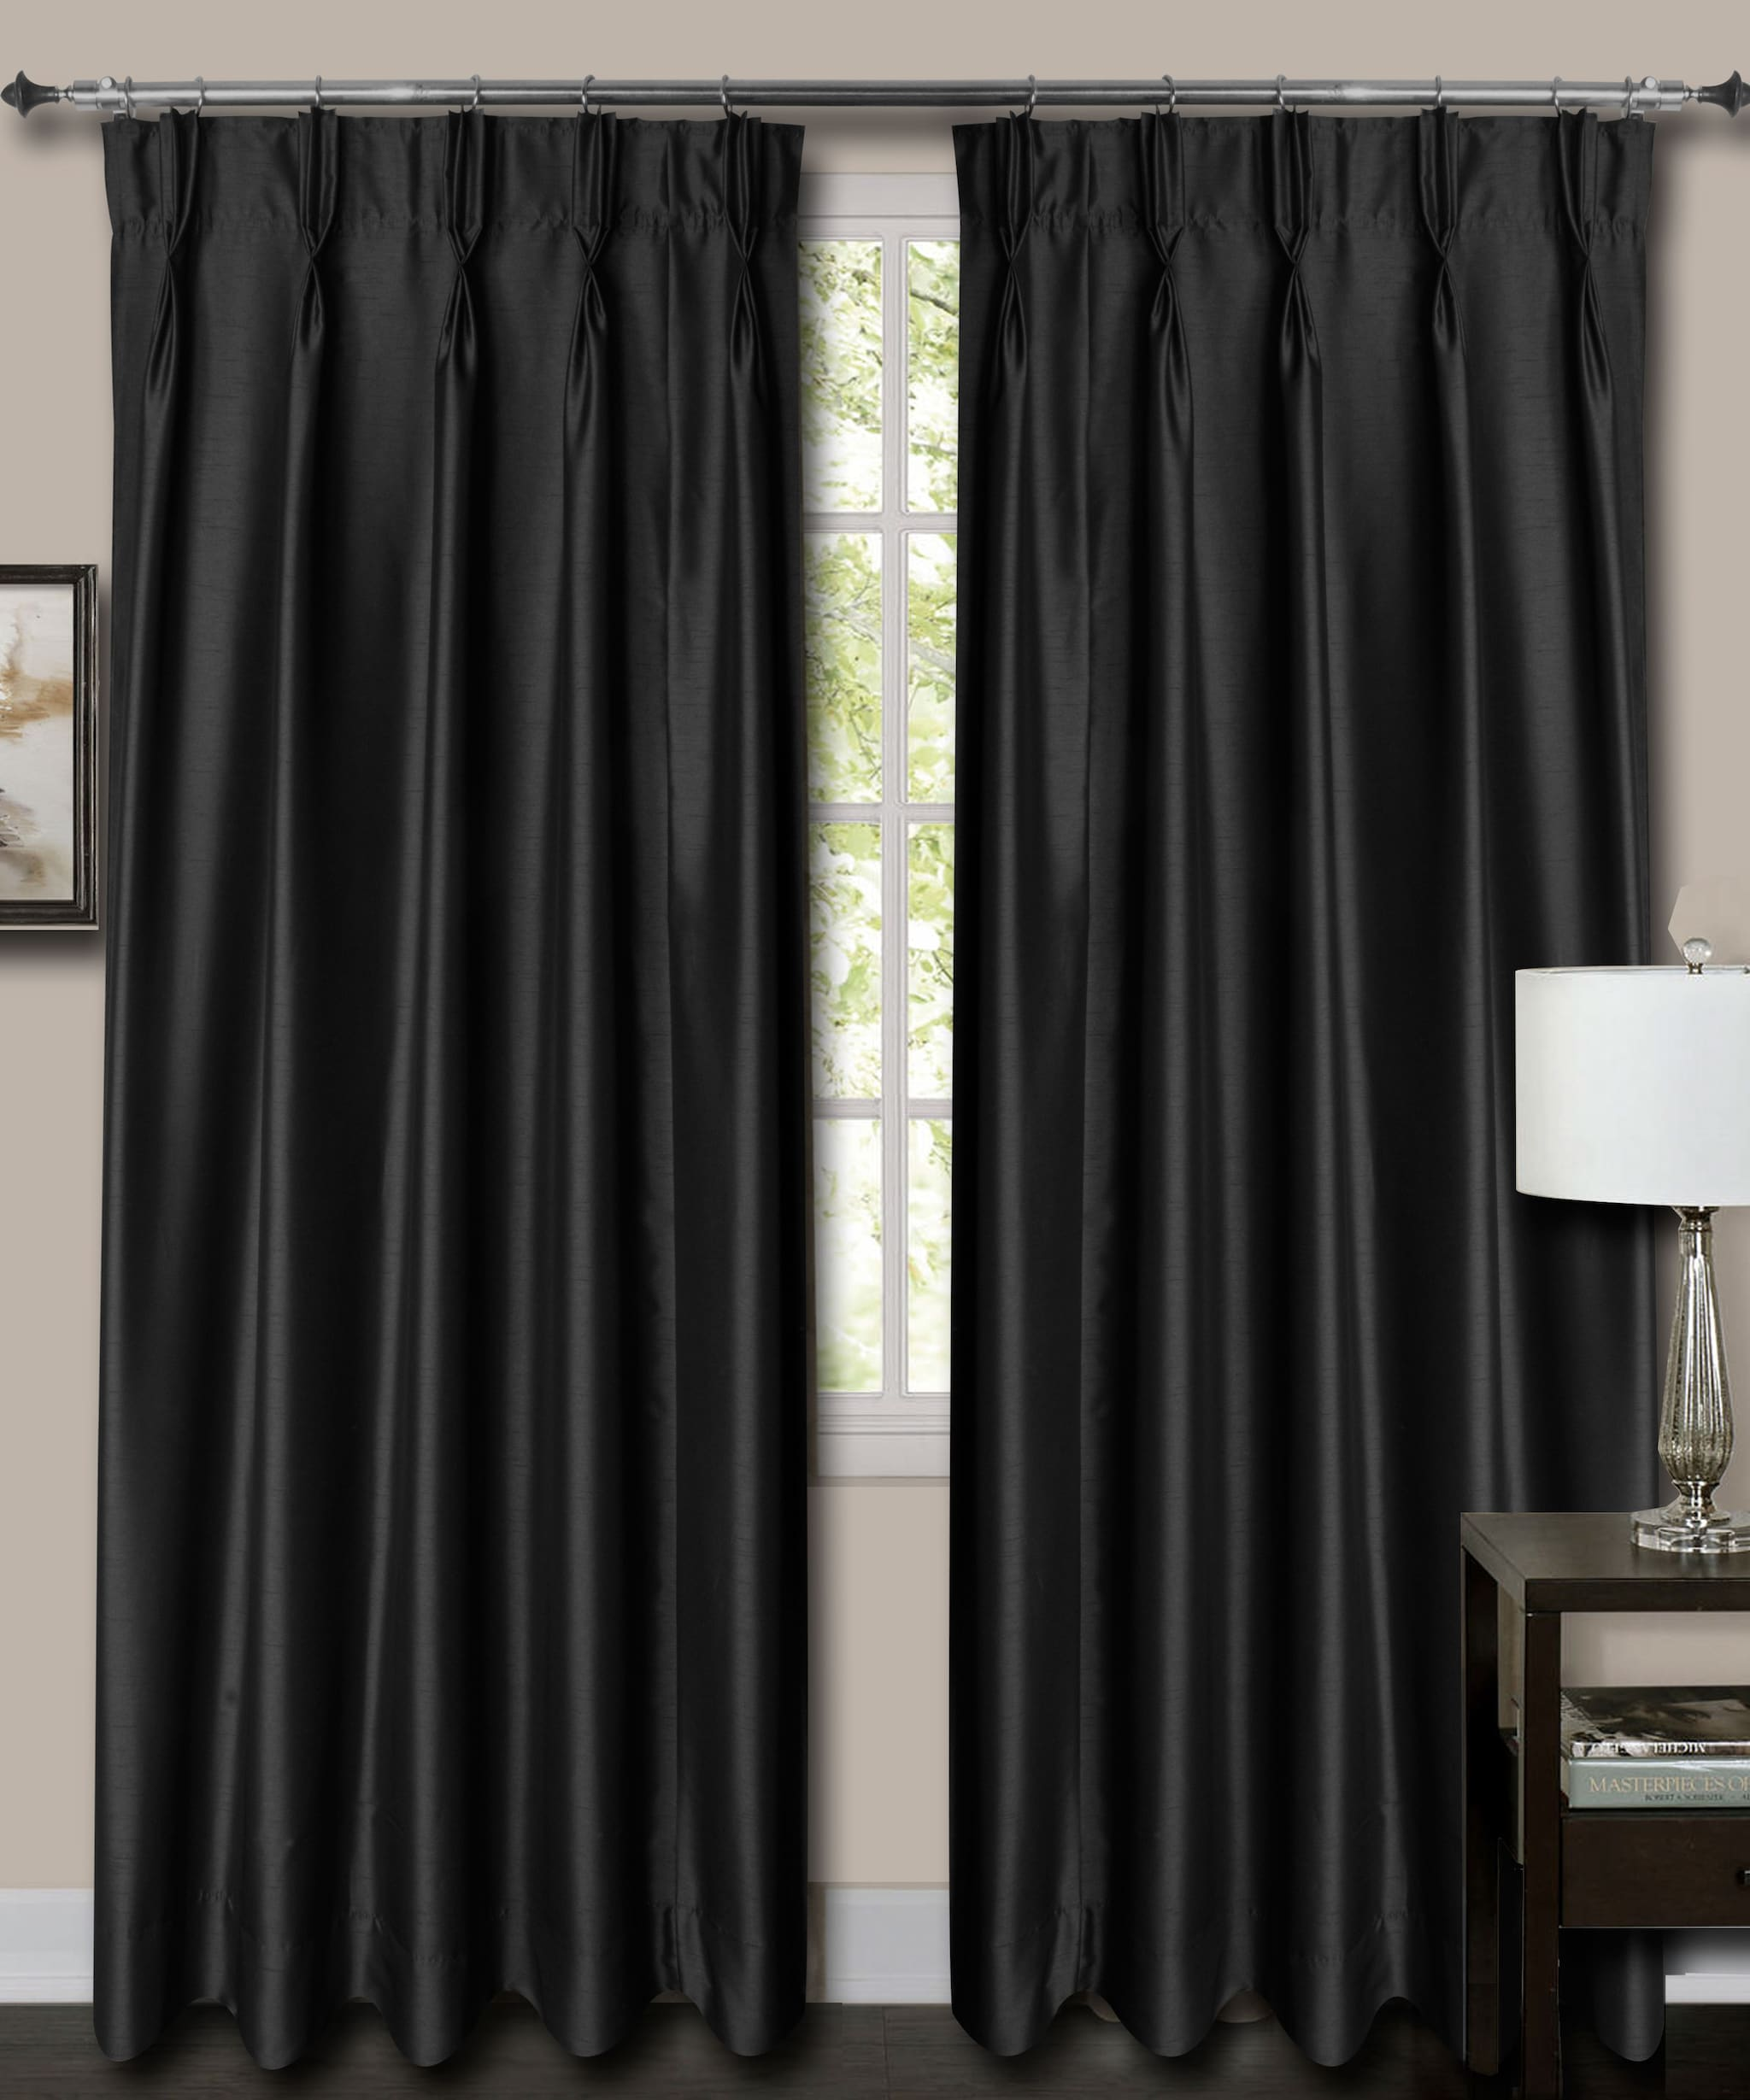 "French Pleat Top Black Faux Silk Dupioni Curtains. (78"" Wide,15 Feet Long,Blackout Lining)"